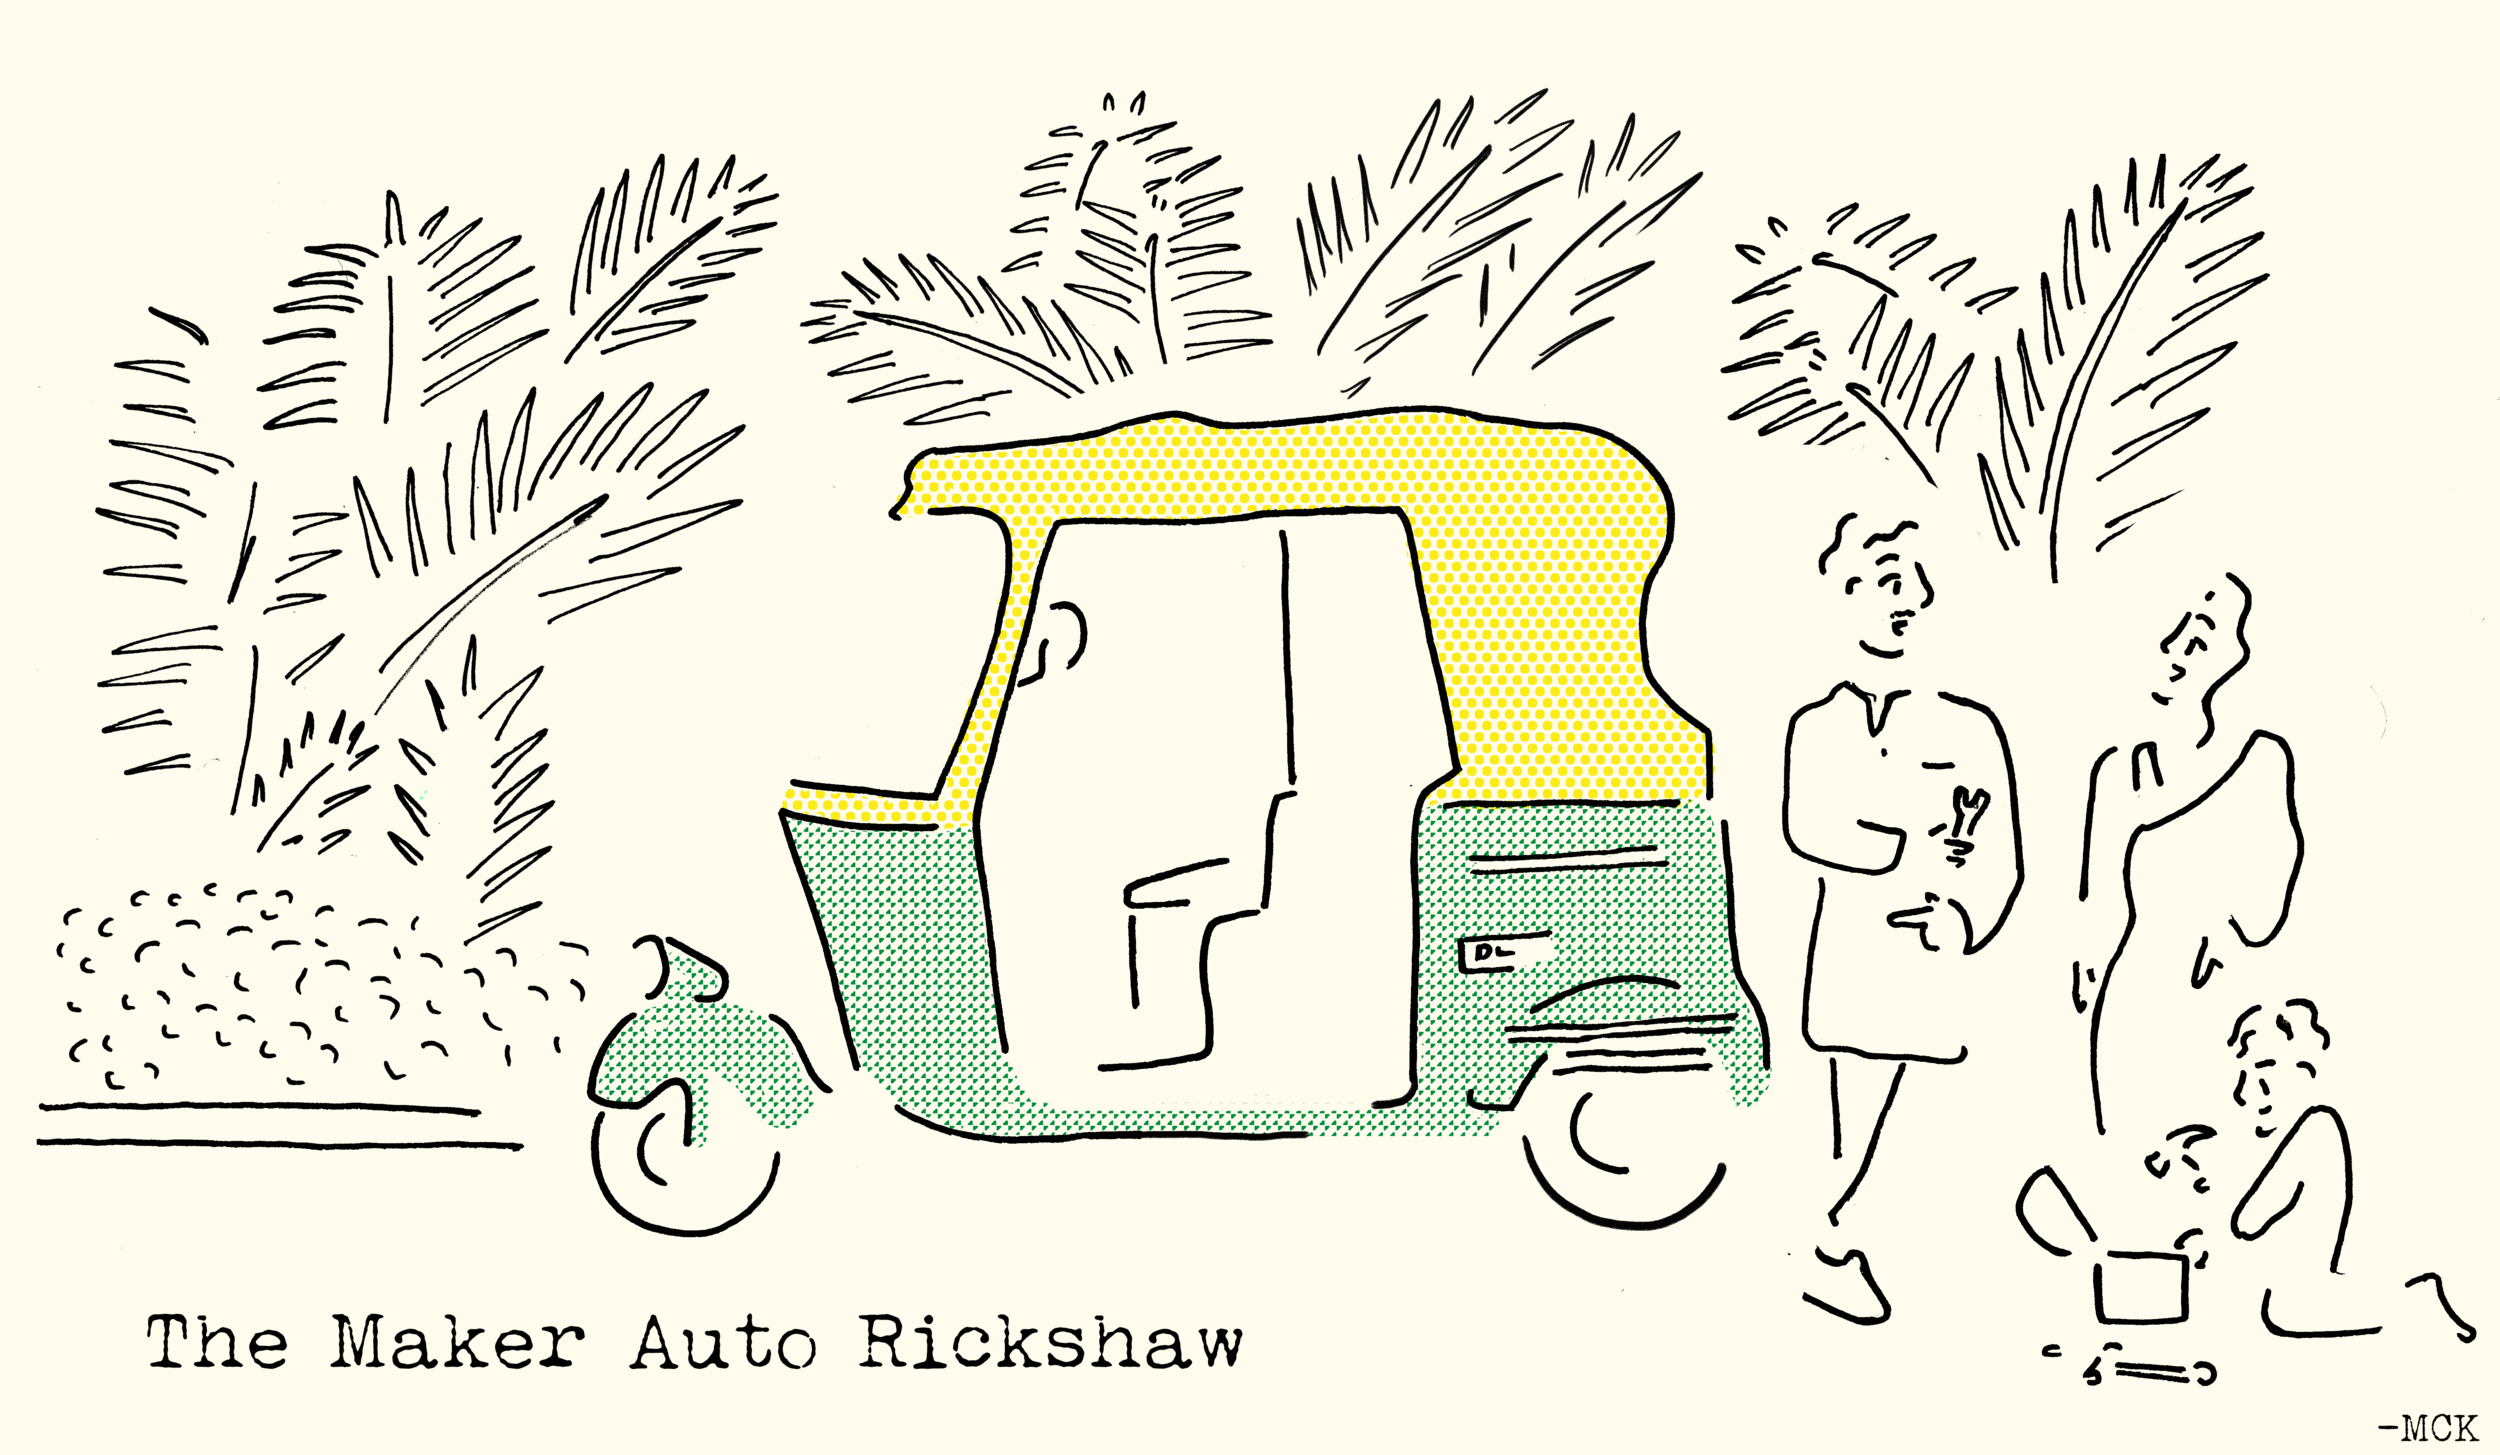 Illustration for a redesign of a Auto Rickshaw. Done for a Startup in India.